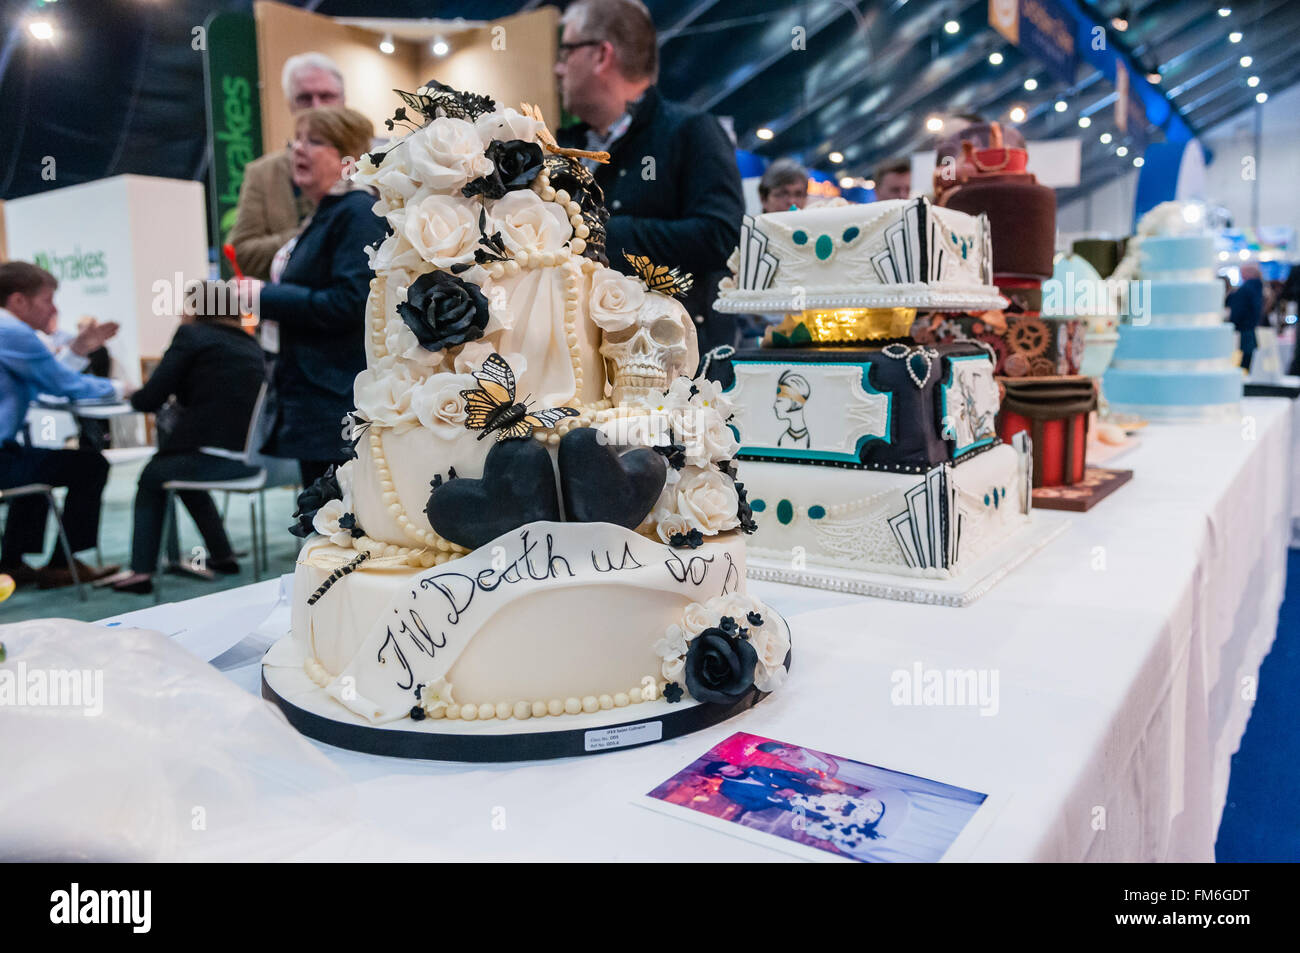 Cake craft exhibits from a competition, on display at a catering conference. - Stock Image